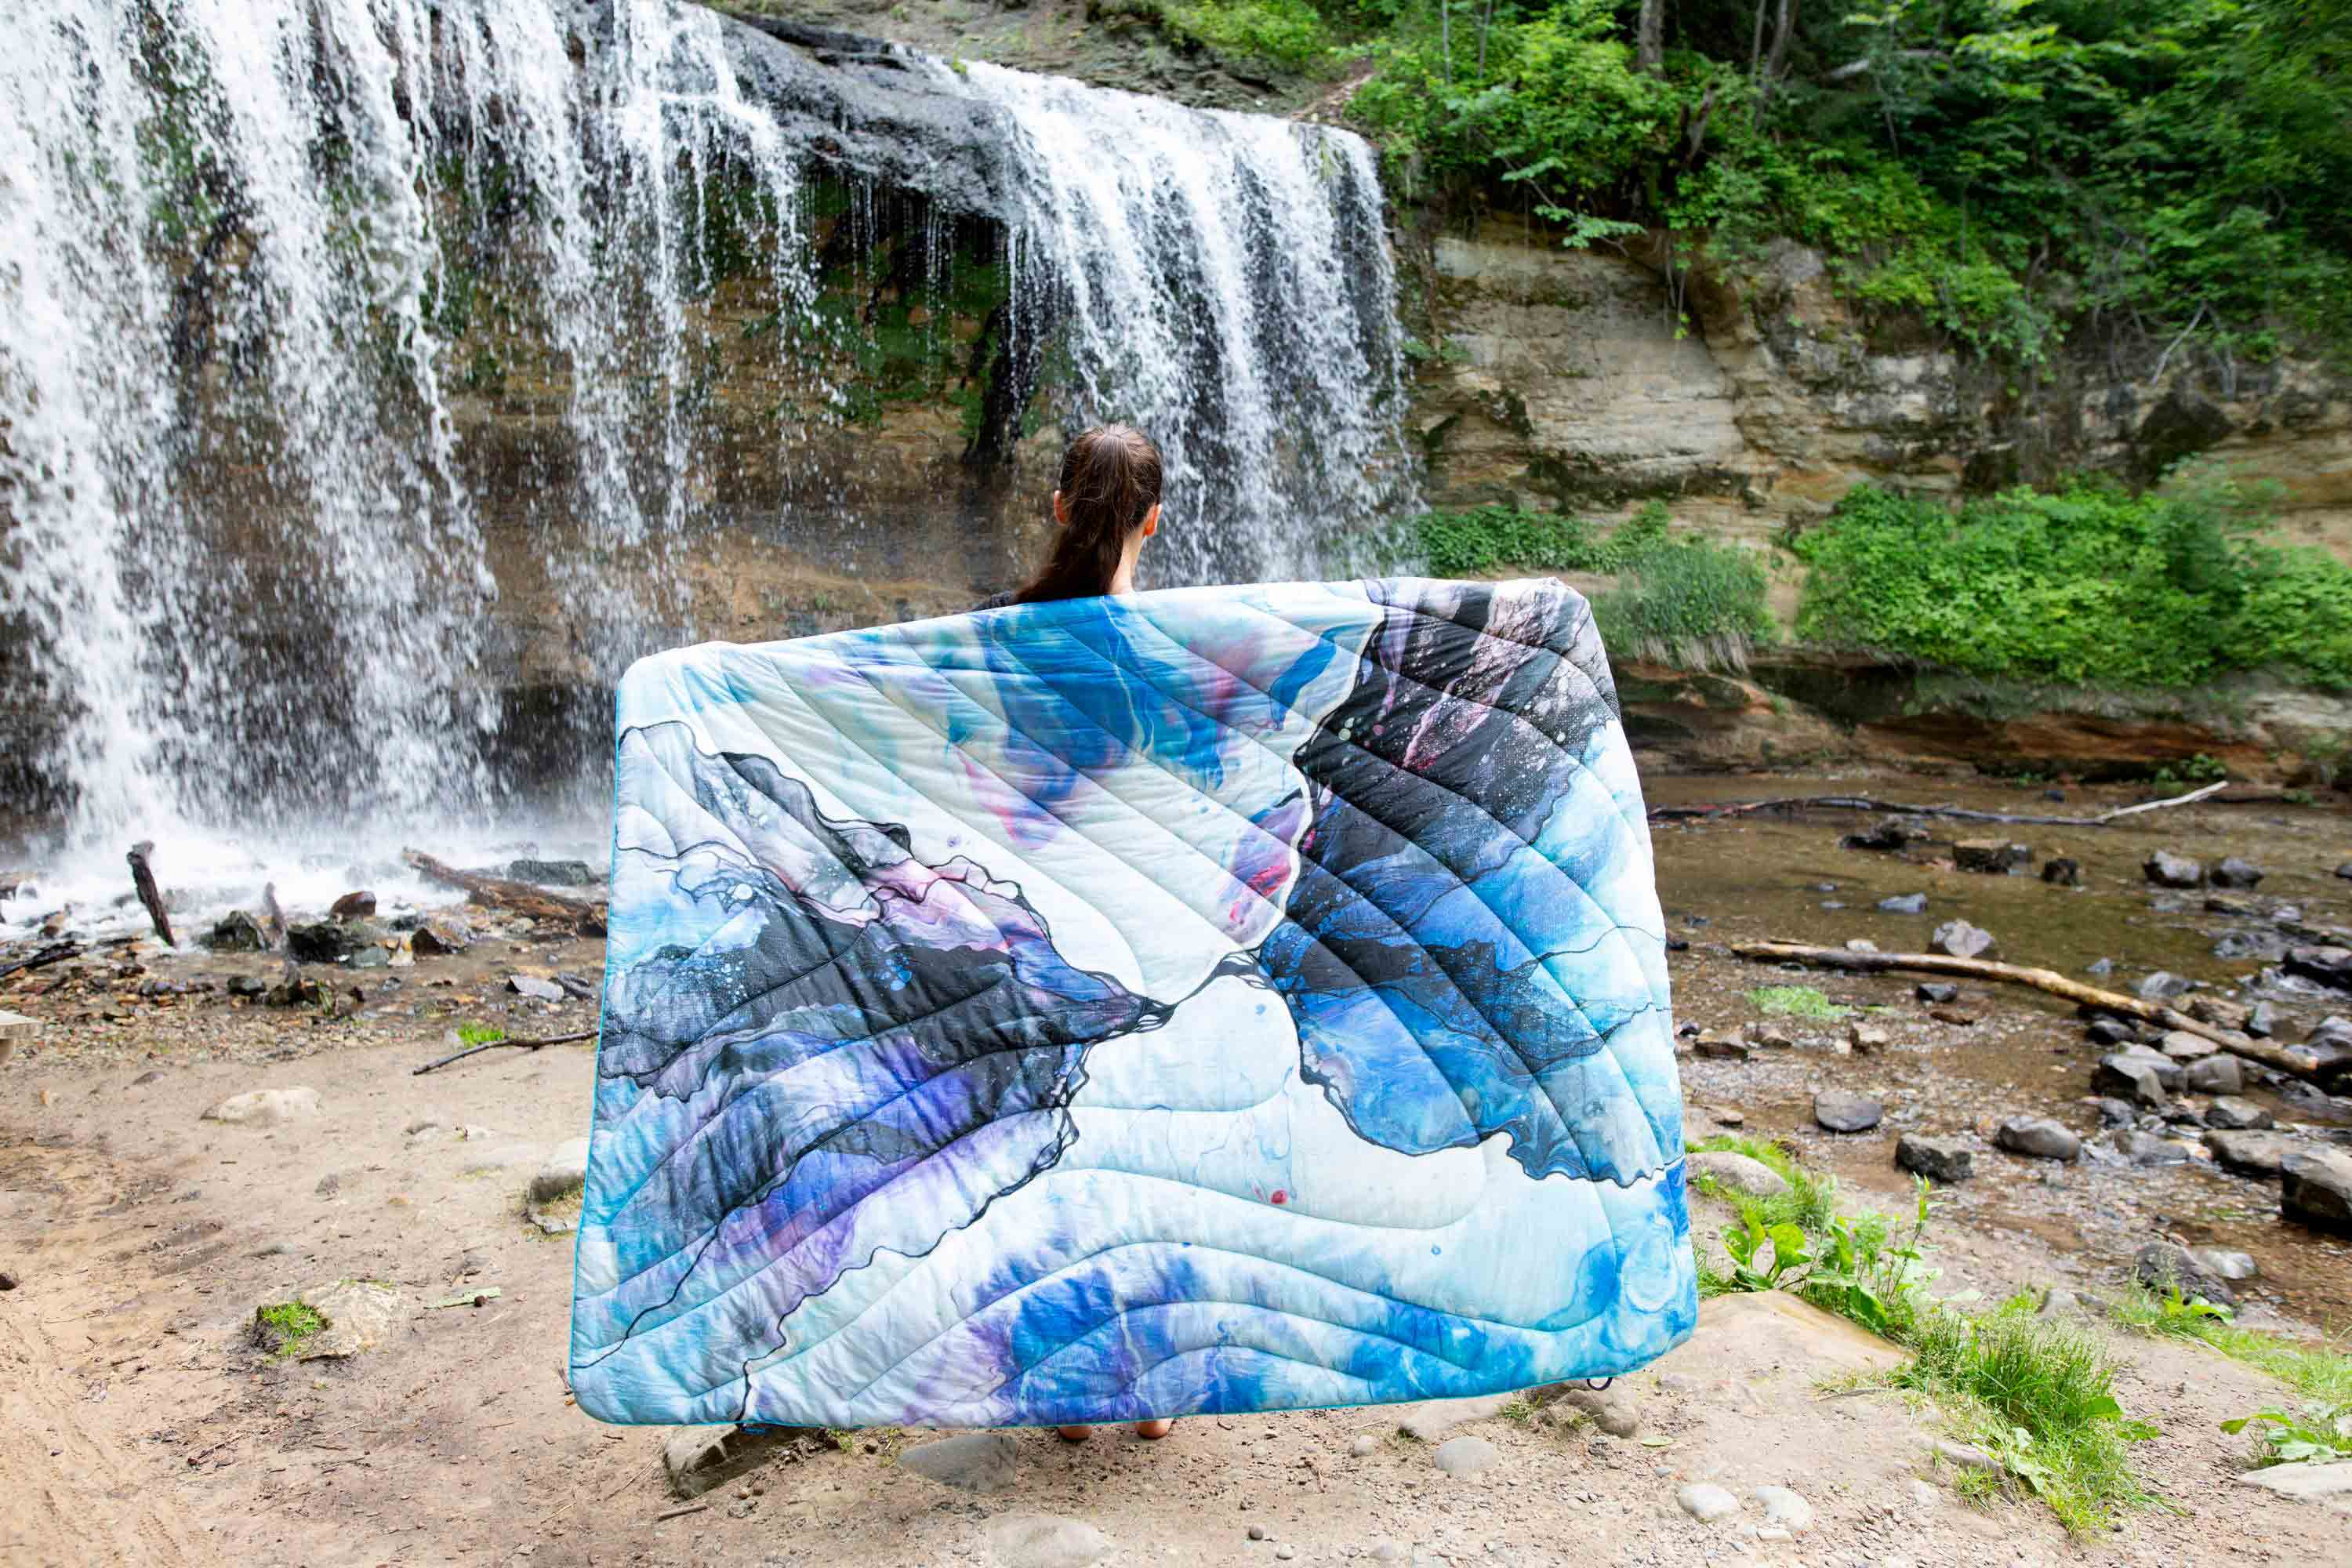 Women standing in front of a waterfall with Rumpl blanket